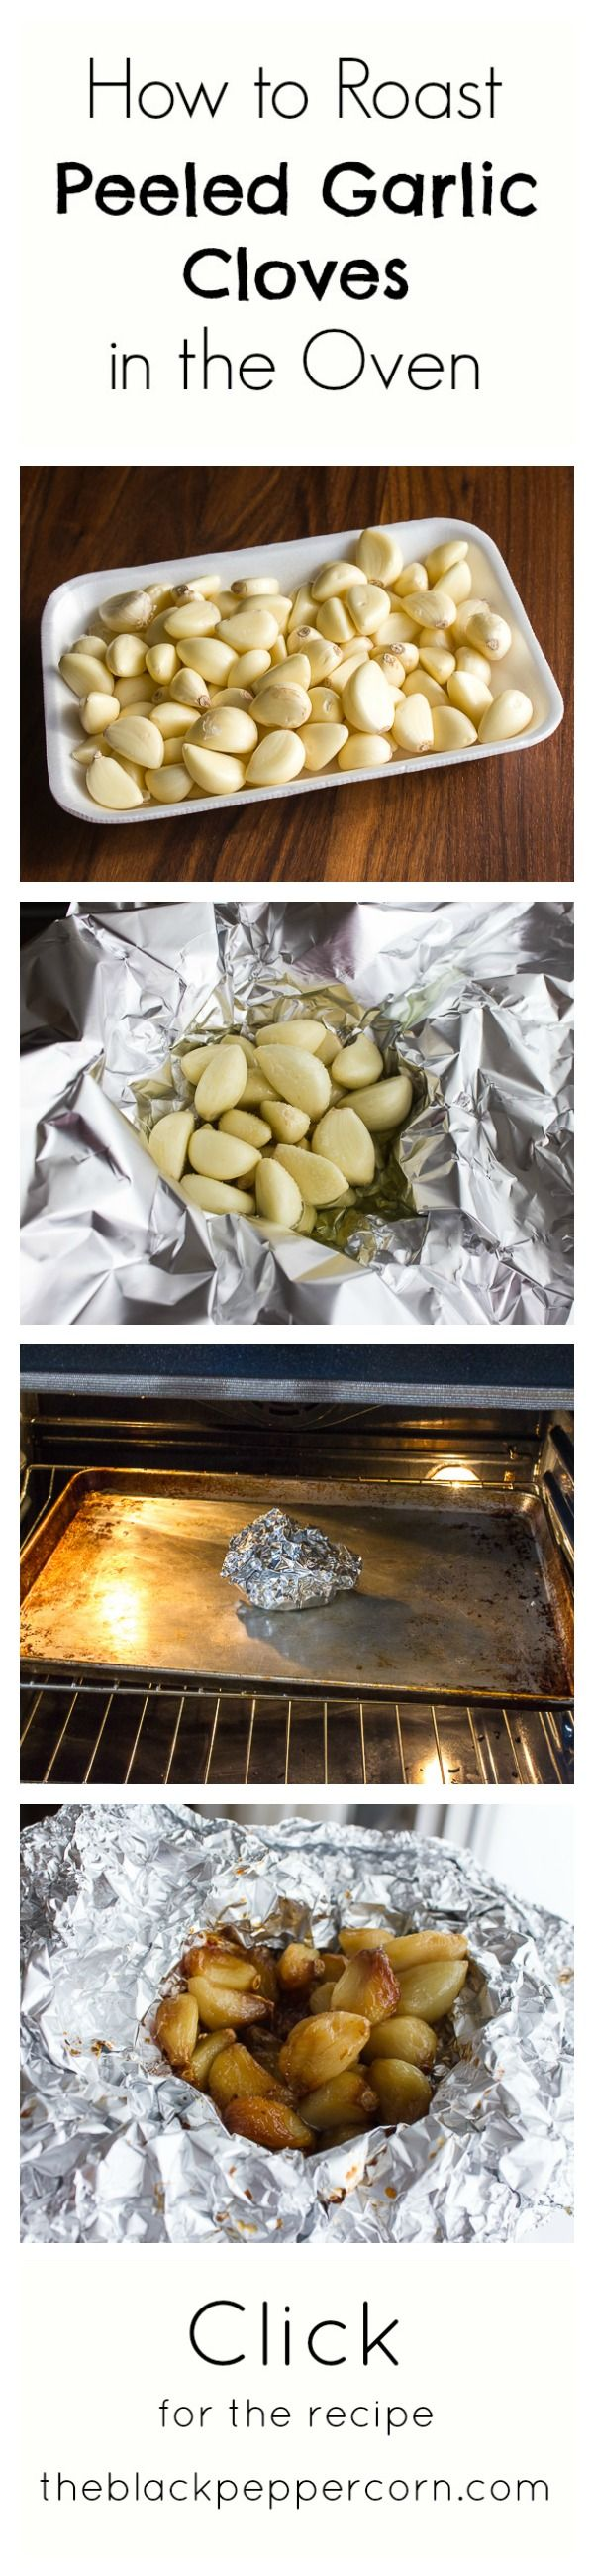 How to Roast Peeled Garlic Cloves in the Oven